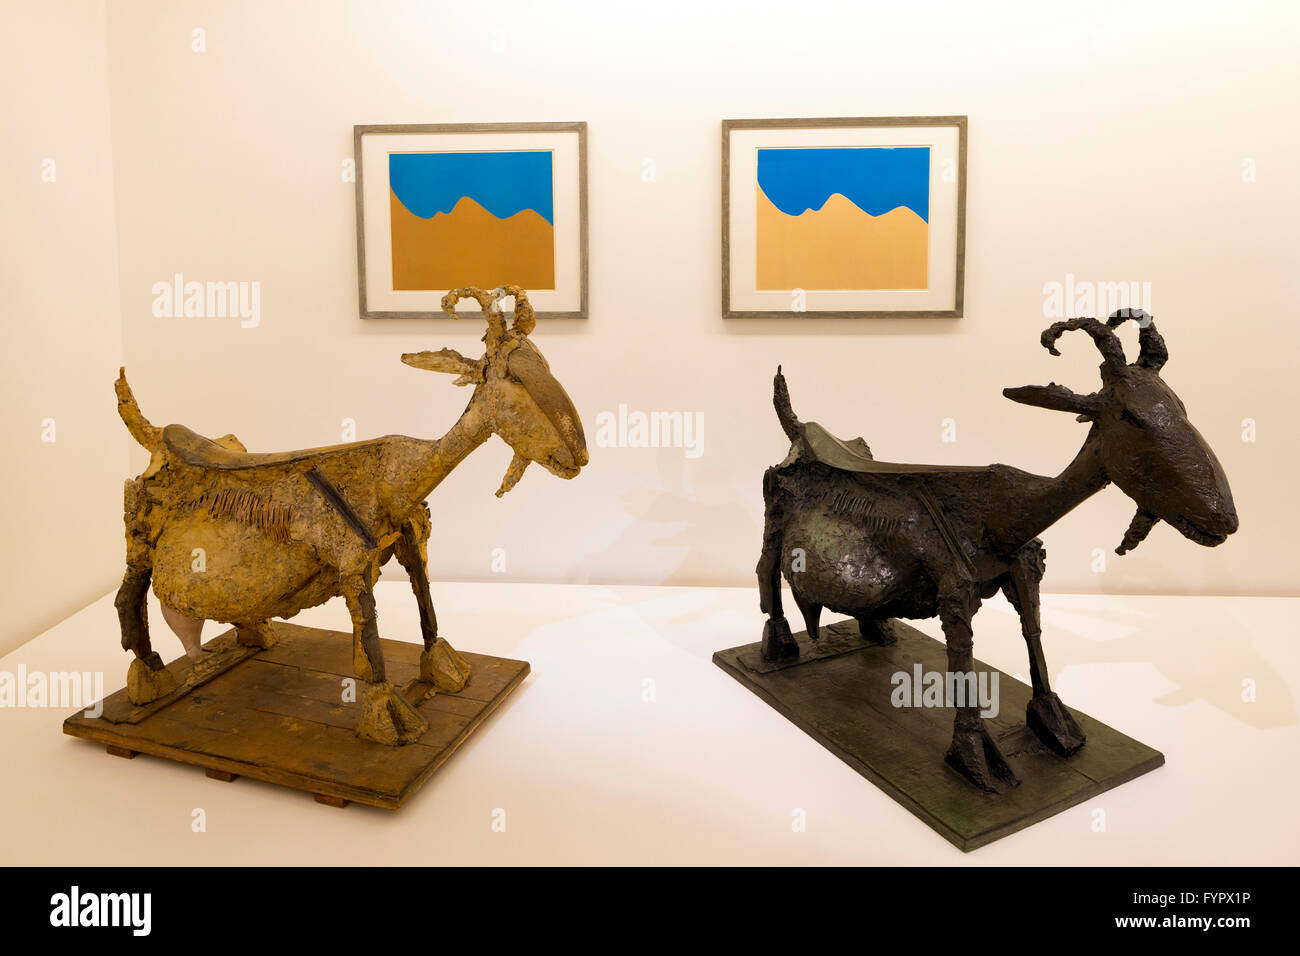 The Goat, La Chevre, 1950, statues interior of Musee Picasso, Paris, France, Europe - Stock Image